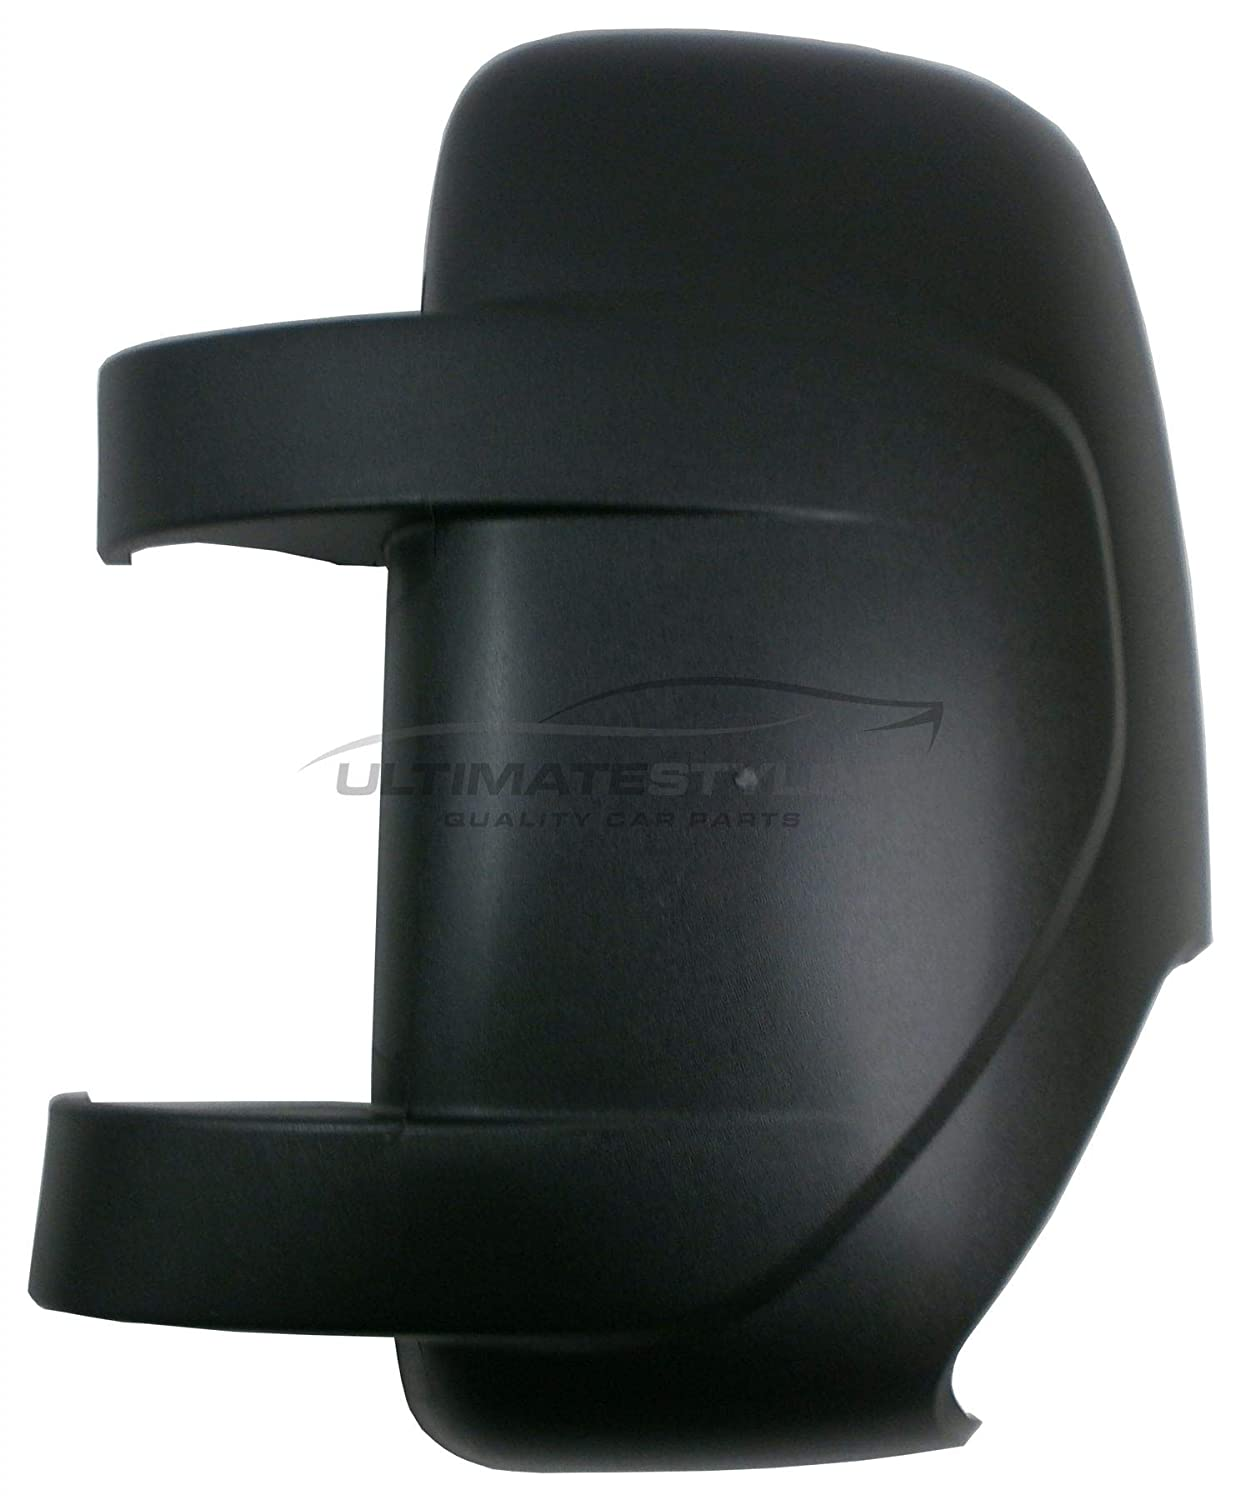 LH Ultimate Styling Aftermarket Replacement Wing Mirror Cover Cap Colour Of Cover Black Left Hand Side Textured For Passenger Side